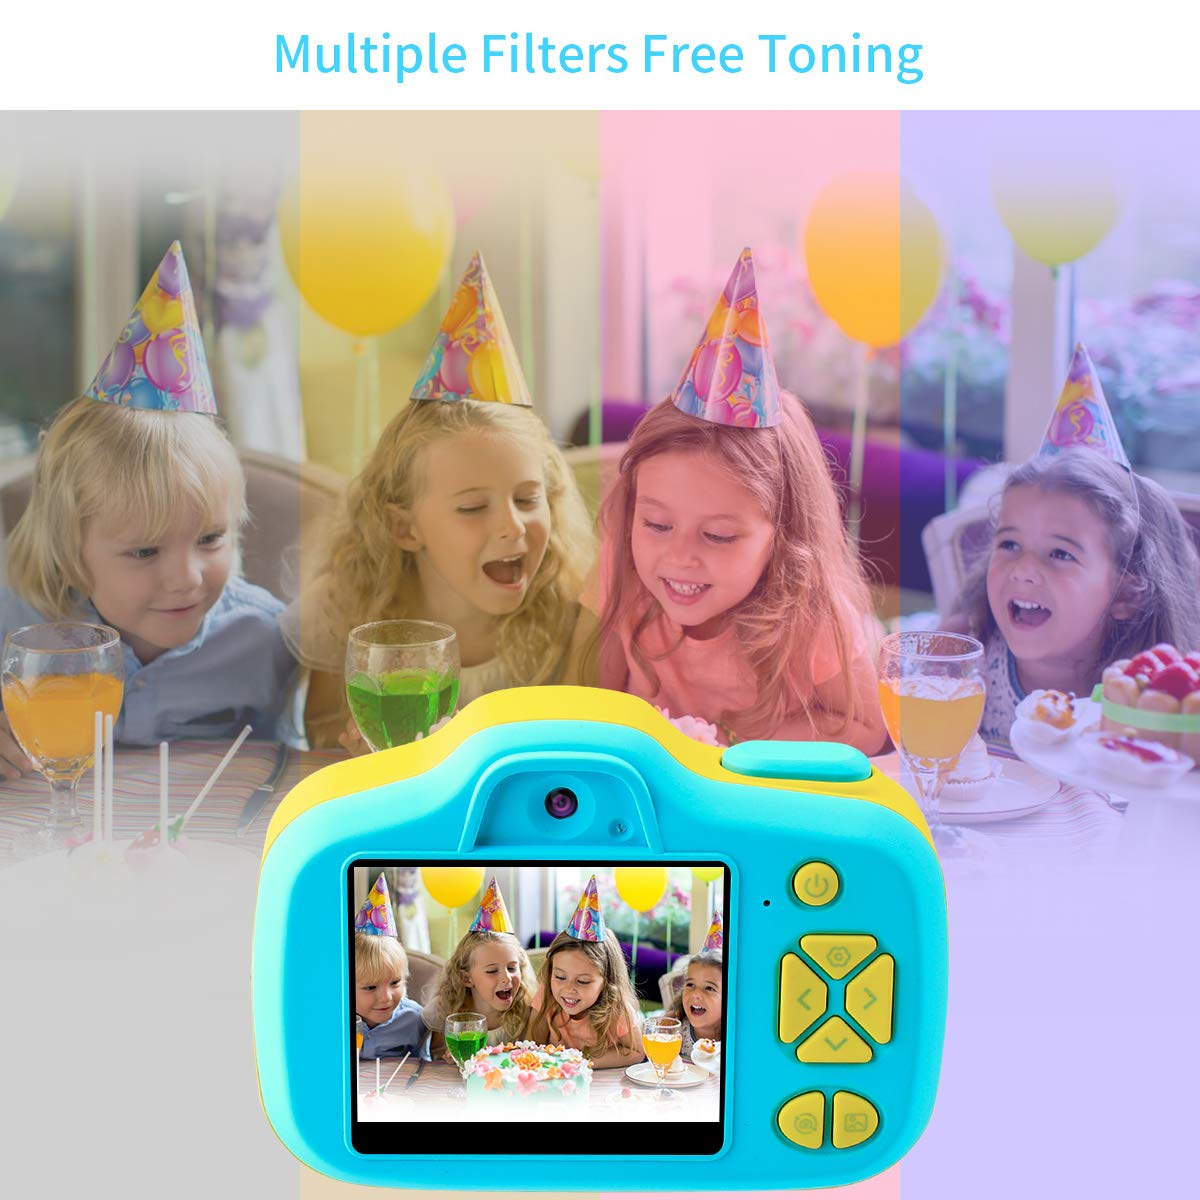 Joytrip Kids Camera Gifts,Front and Rear Selfie Children Camcorder,2.3 Inches Screen,for Boys,Blue by Joytrip (Image #6)